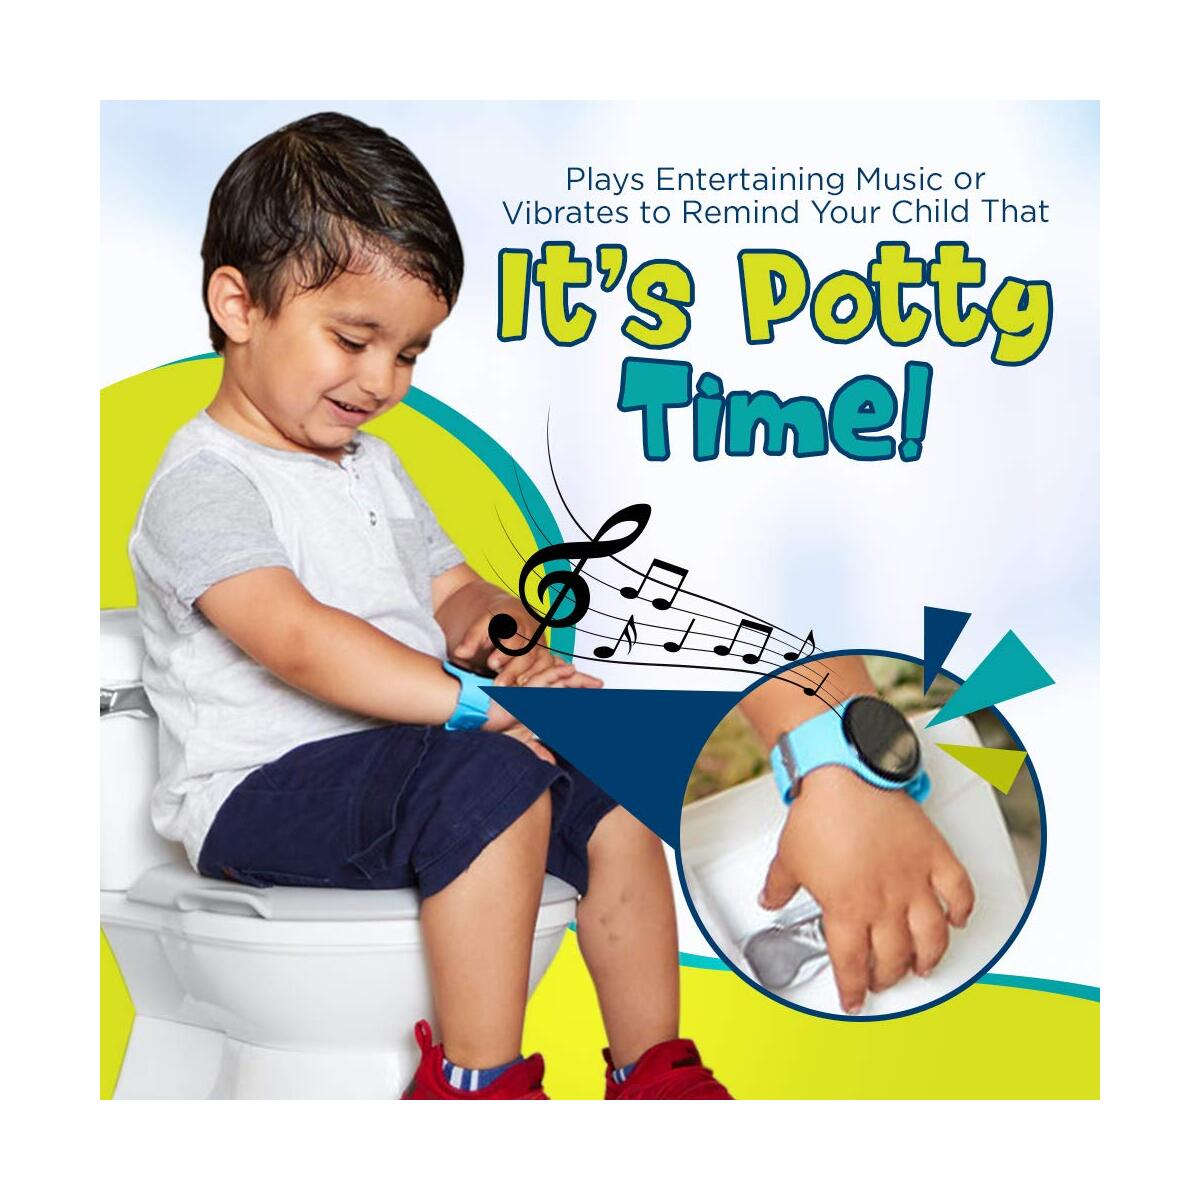 Kidnovations Premium Potty Training Watch - Rechargeable, Water Resistant, Toddler Reminder Watch for Toilet Training Boys & Girls - Potty Trainer Alarm/Timer & Bathroom Training for Kids & Toddler